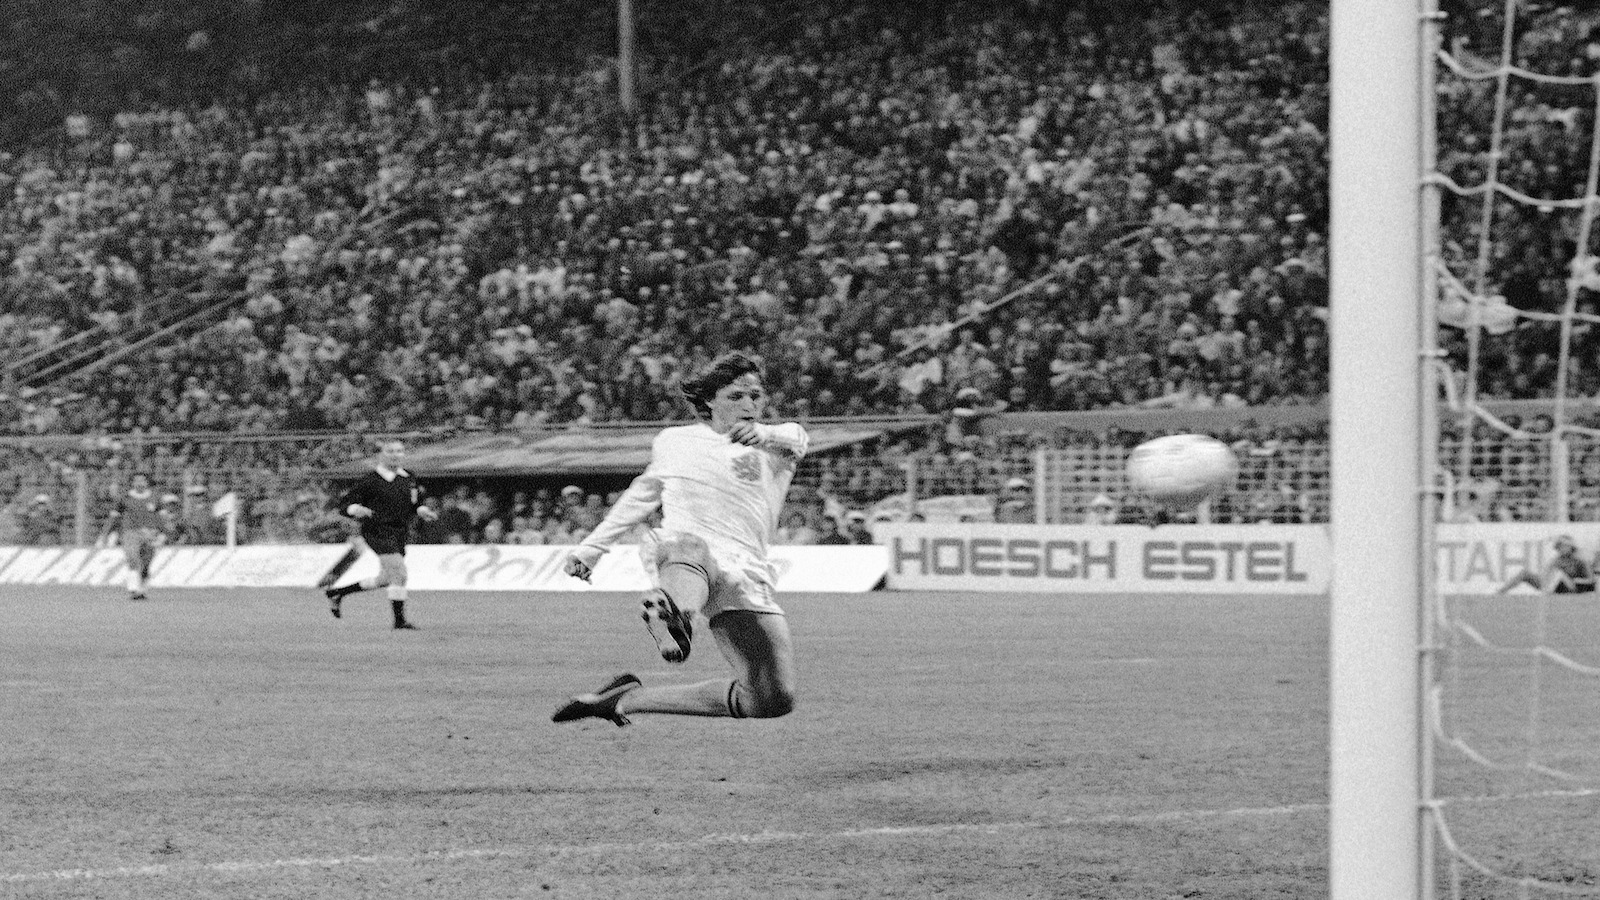 FILE - In this July 3, 1974 file photo, Dutch forward Johann Cruyff scores his team?s second goal against Brazil in their World Cup Soccer match, in Dortmund, West Germany. On this day: The Netherlands beats Brazil 2-0 to qualify for the World Cup final.